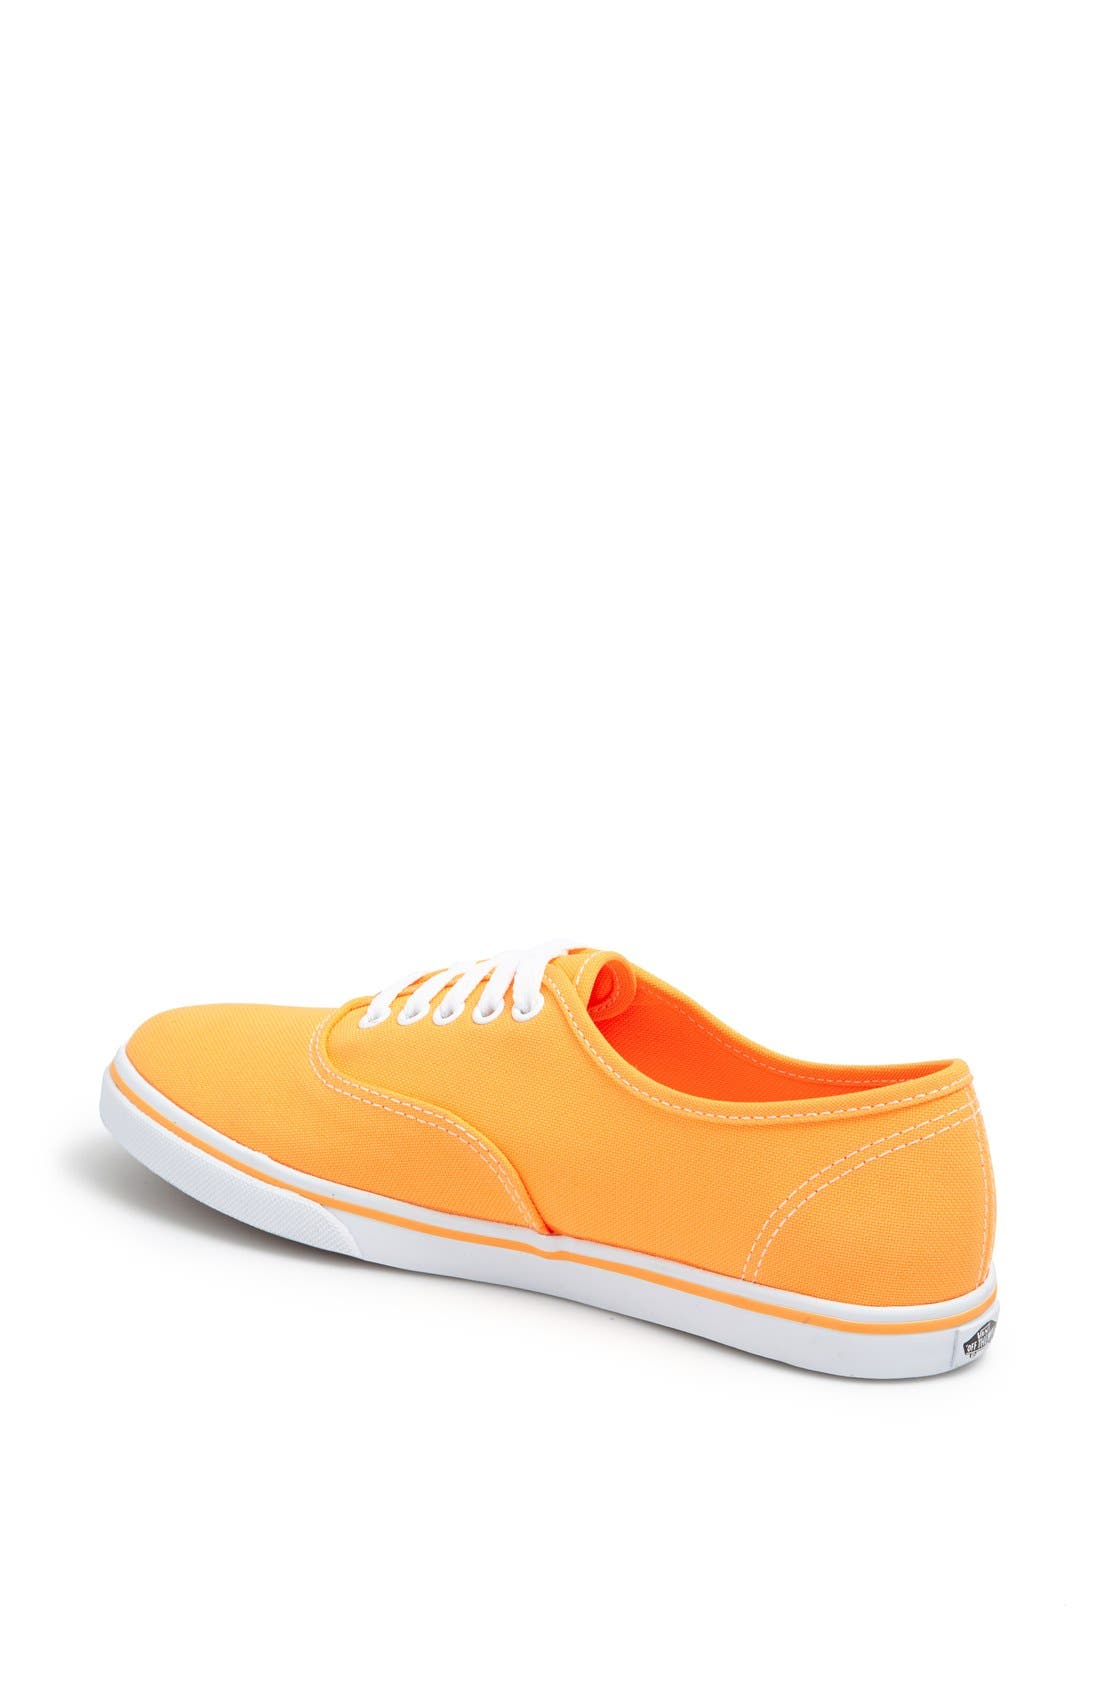 Alternate Image 2  - Vans 'Authentic Lo Pro - Neon' Sneaker (Women)